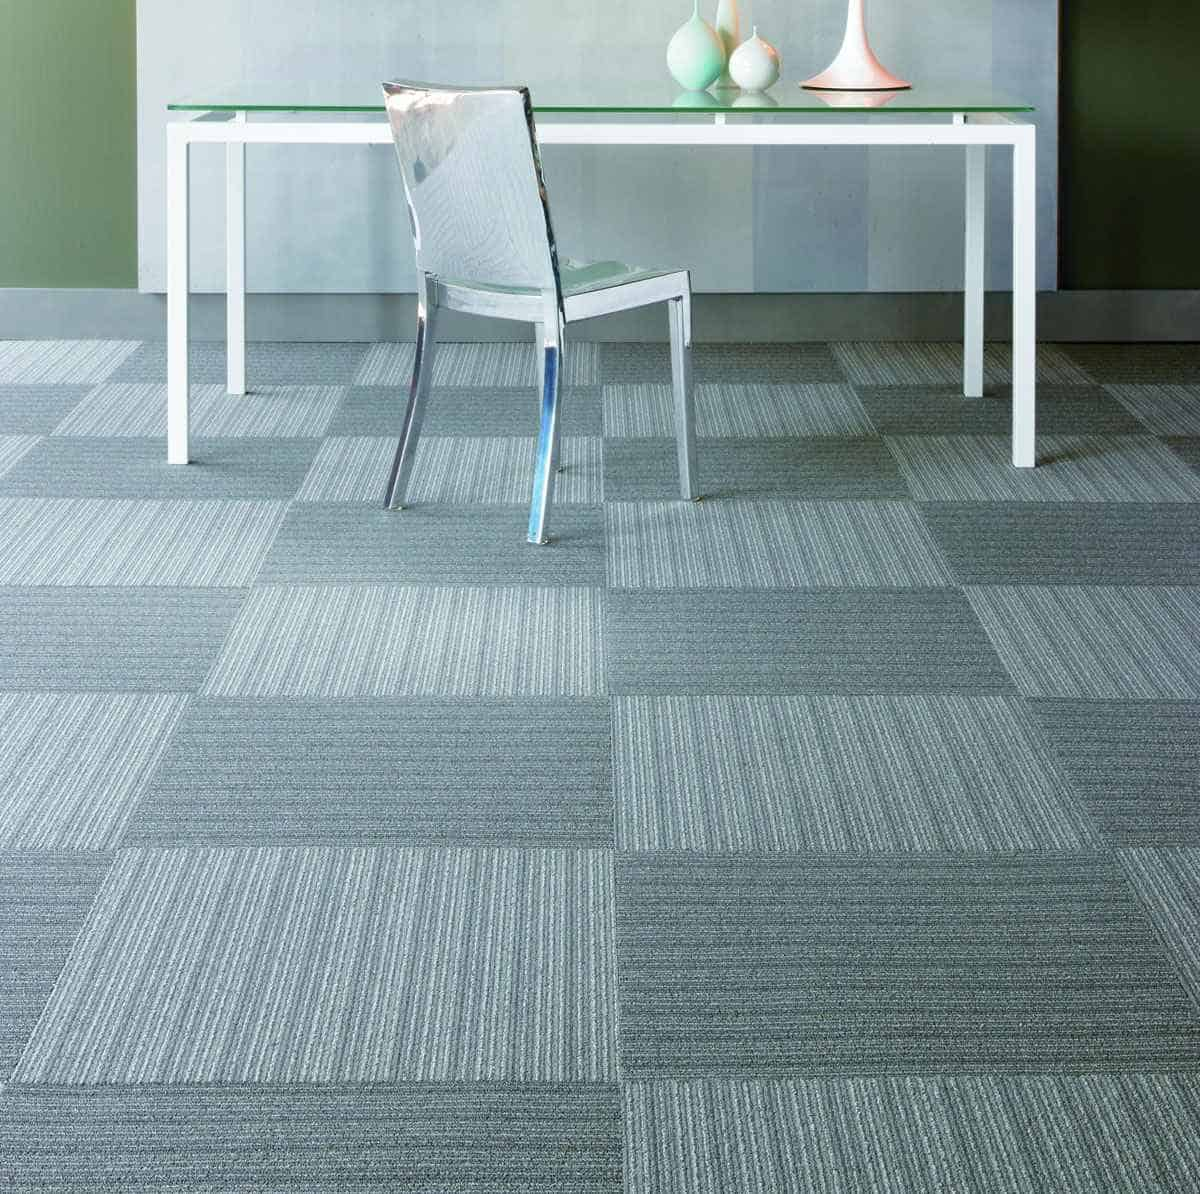 Ordinaire Commercial Floor Tiles Home Design